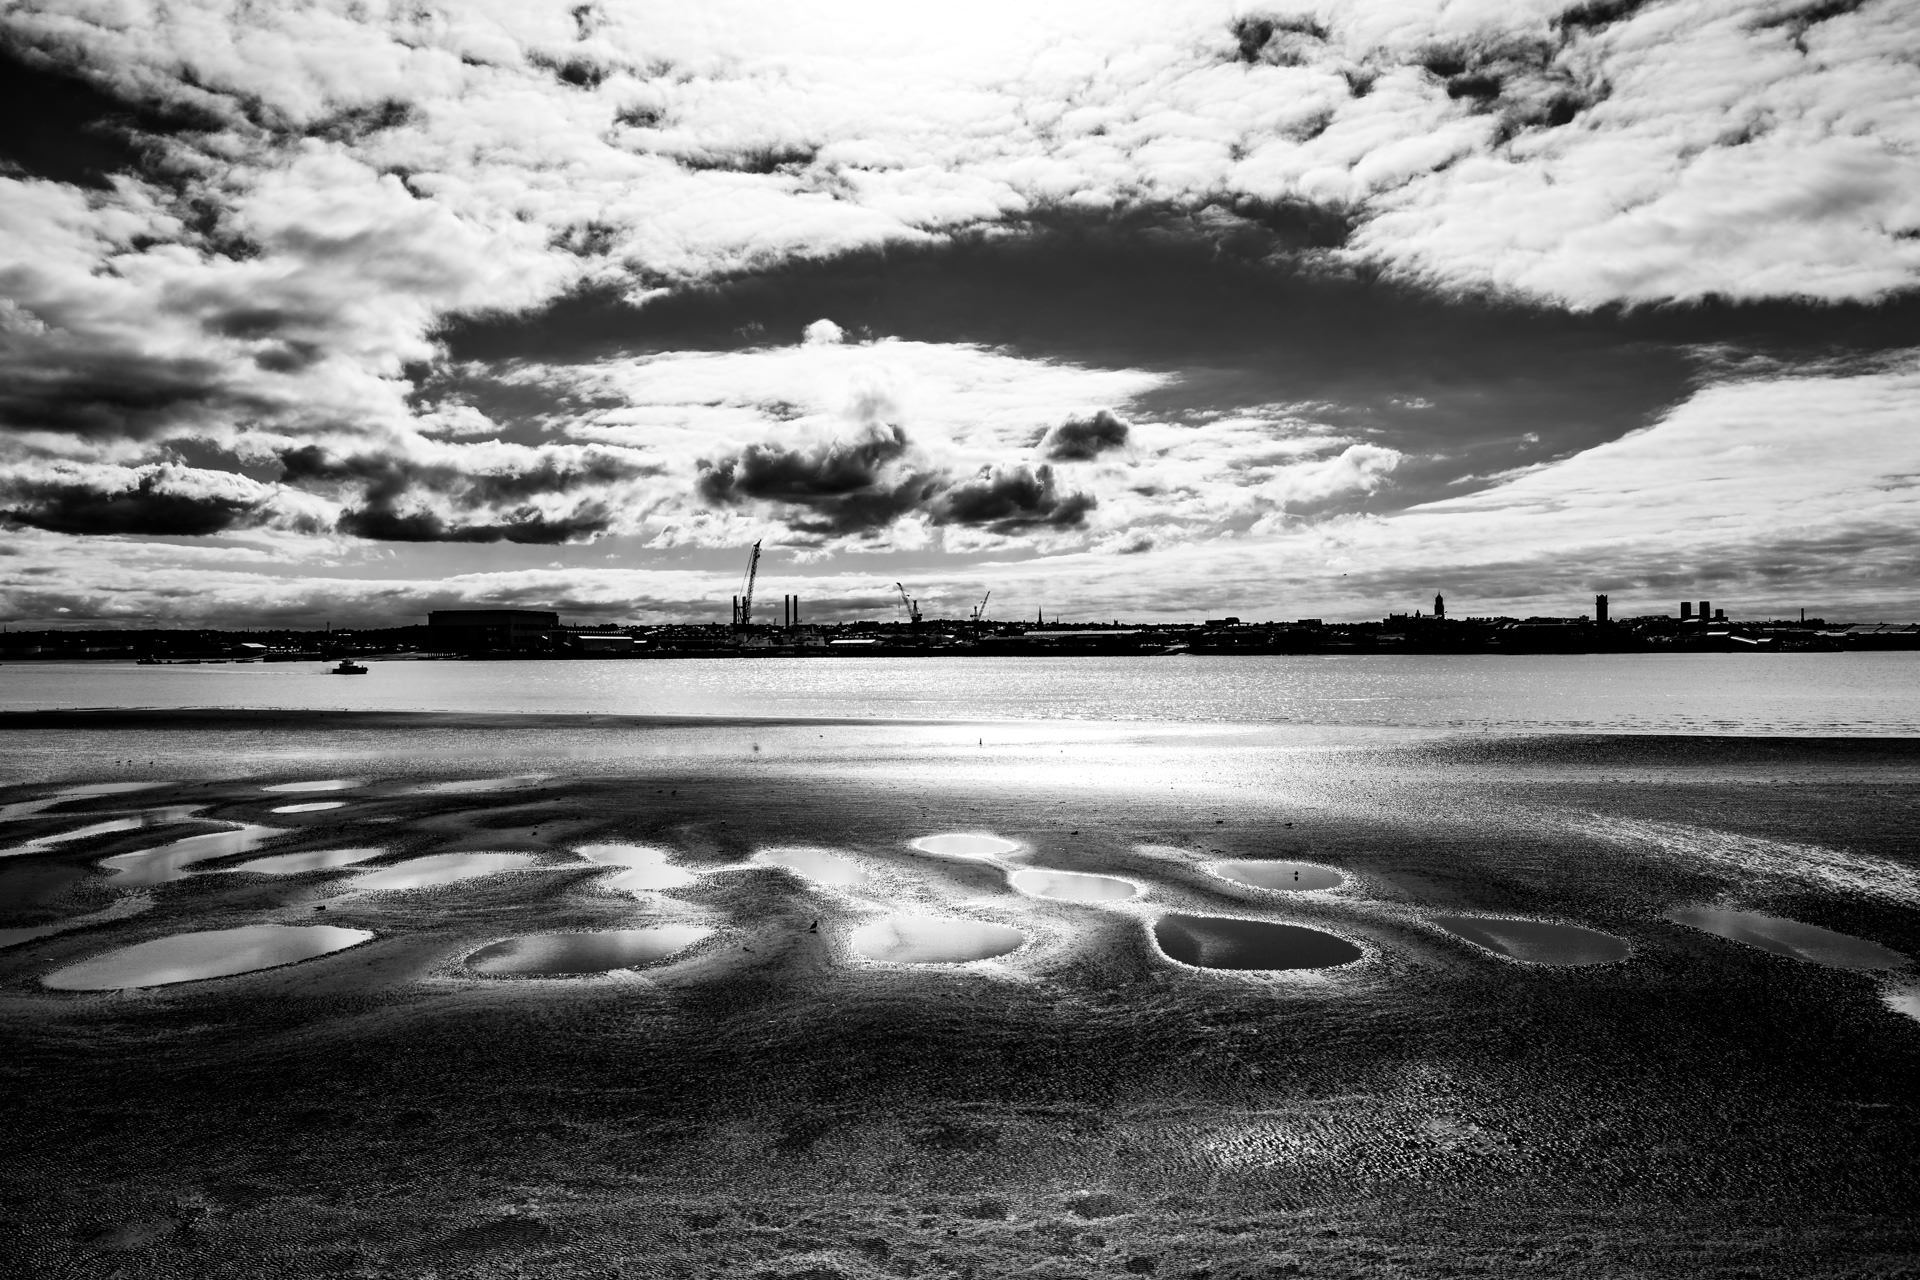 Looking out towards an industrial part of the Wirral.